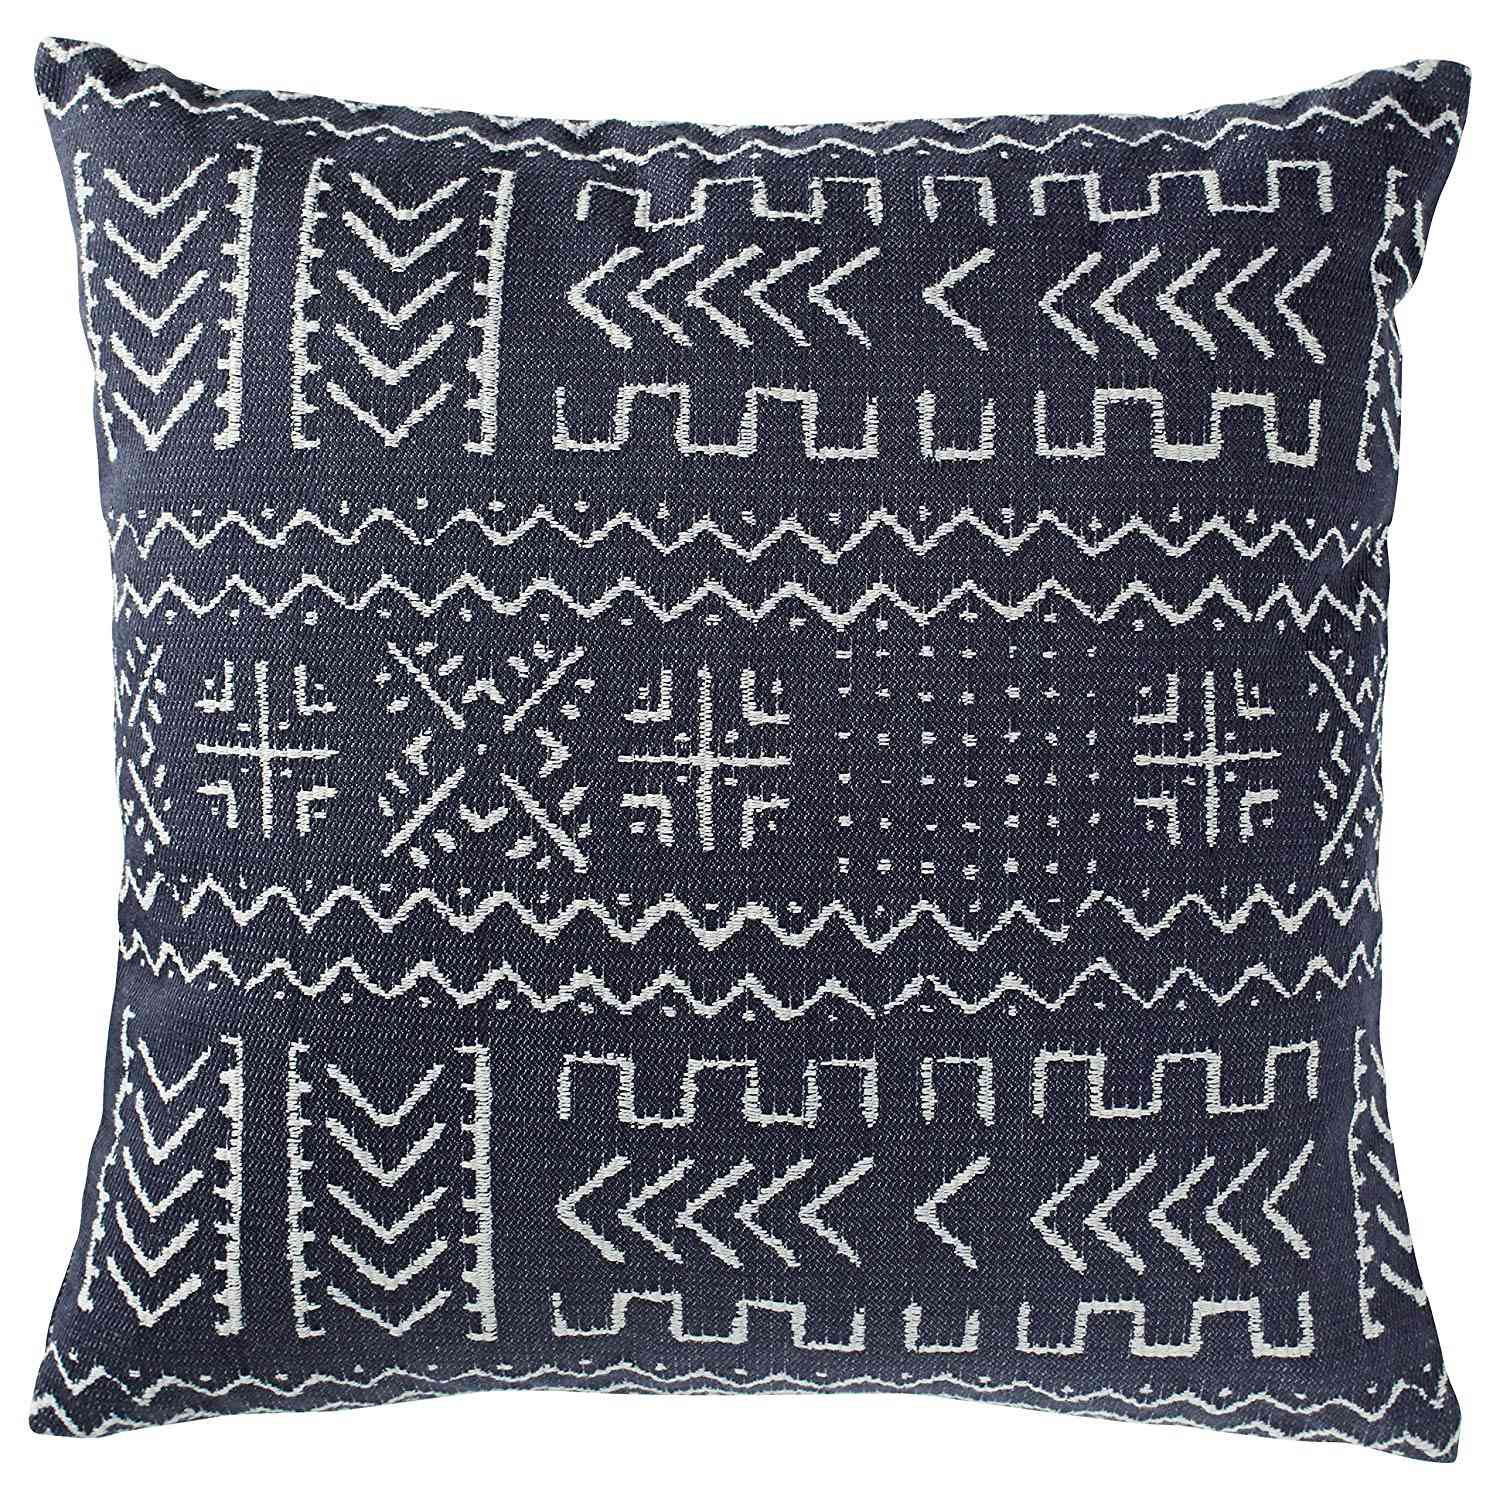 Mudcloth-Inspired Decorative Throw Pillow